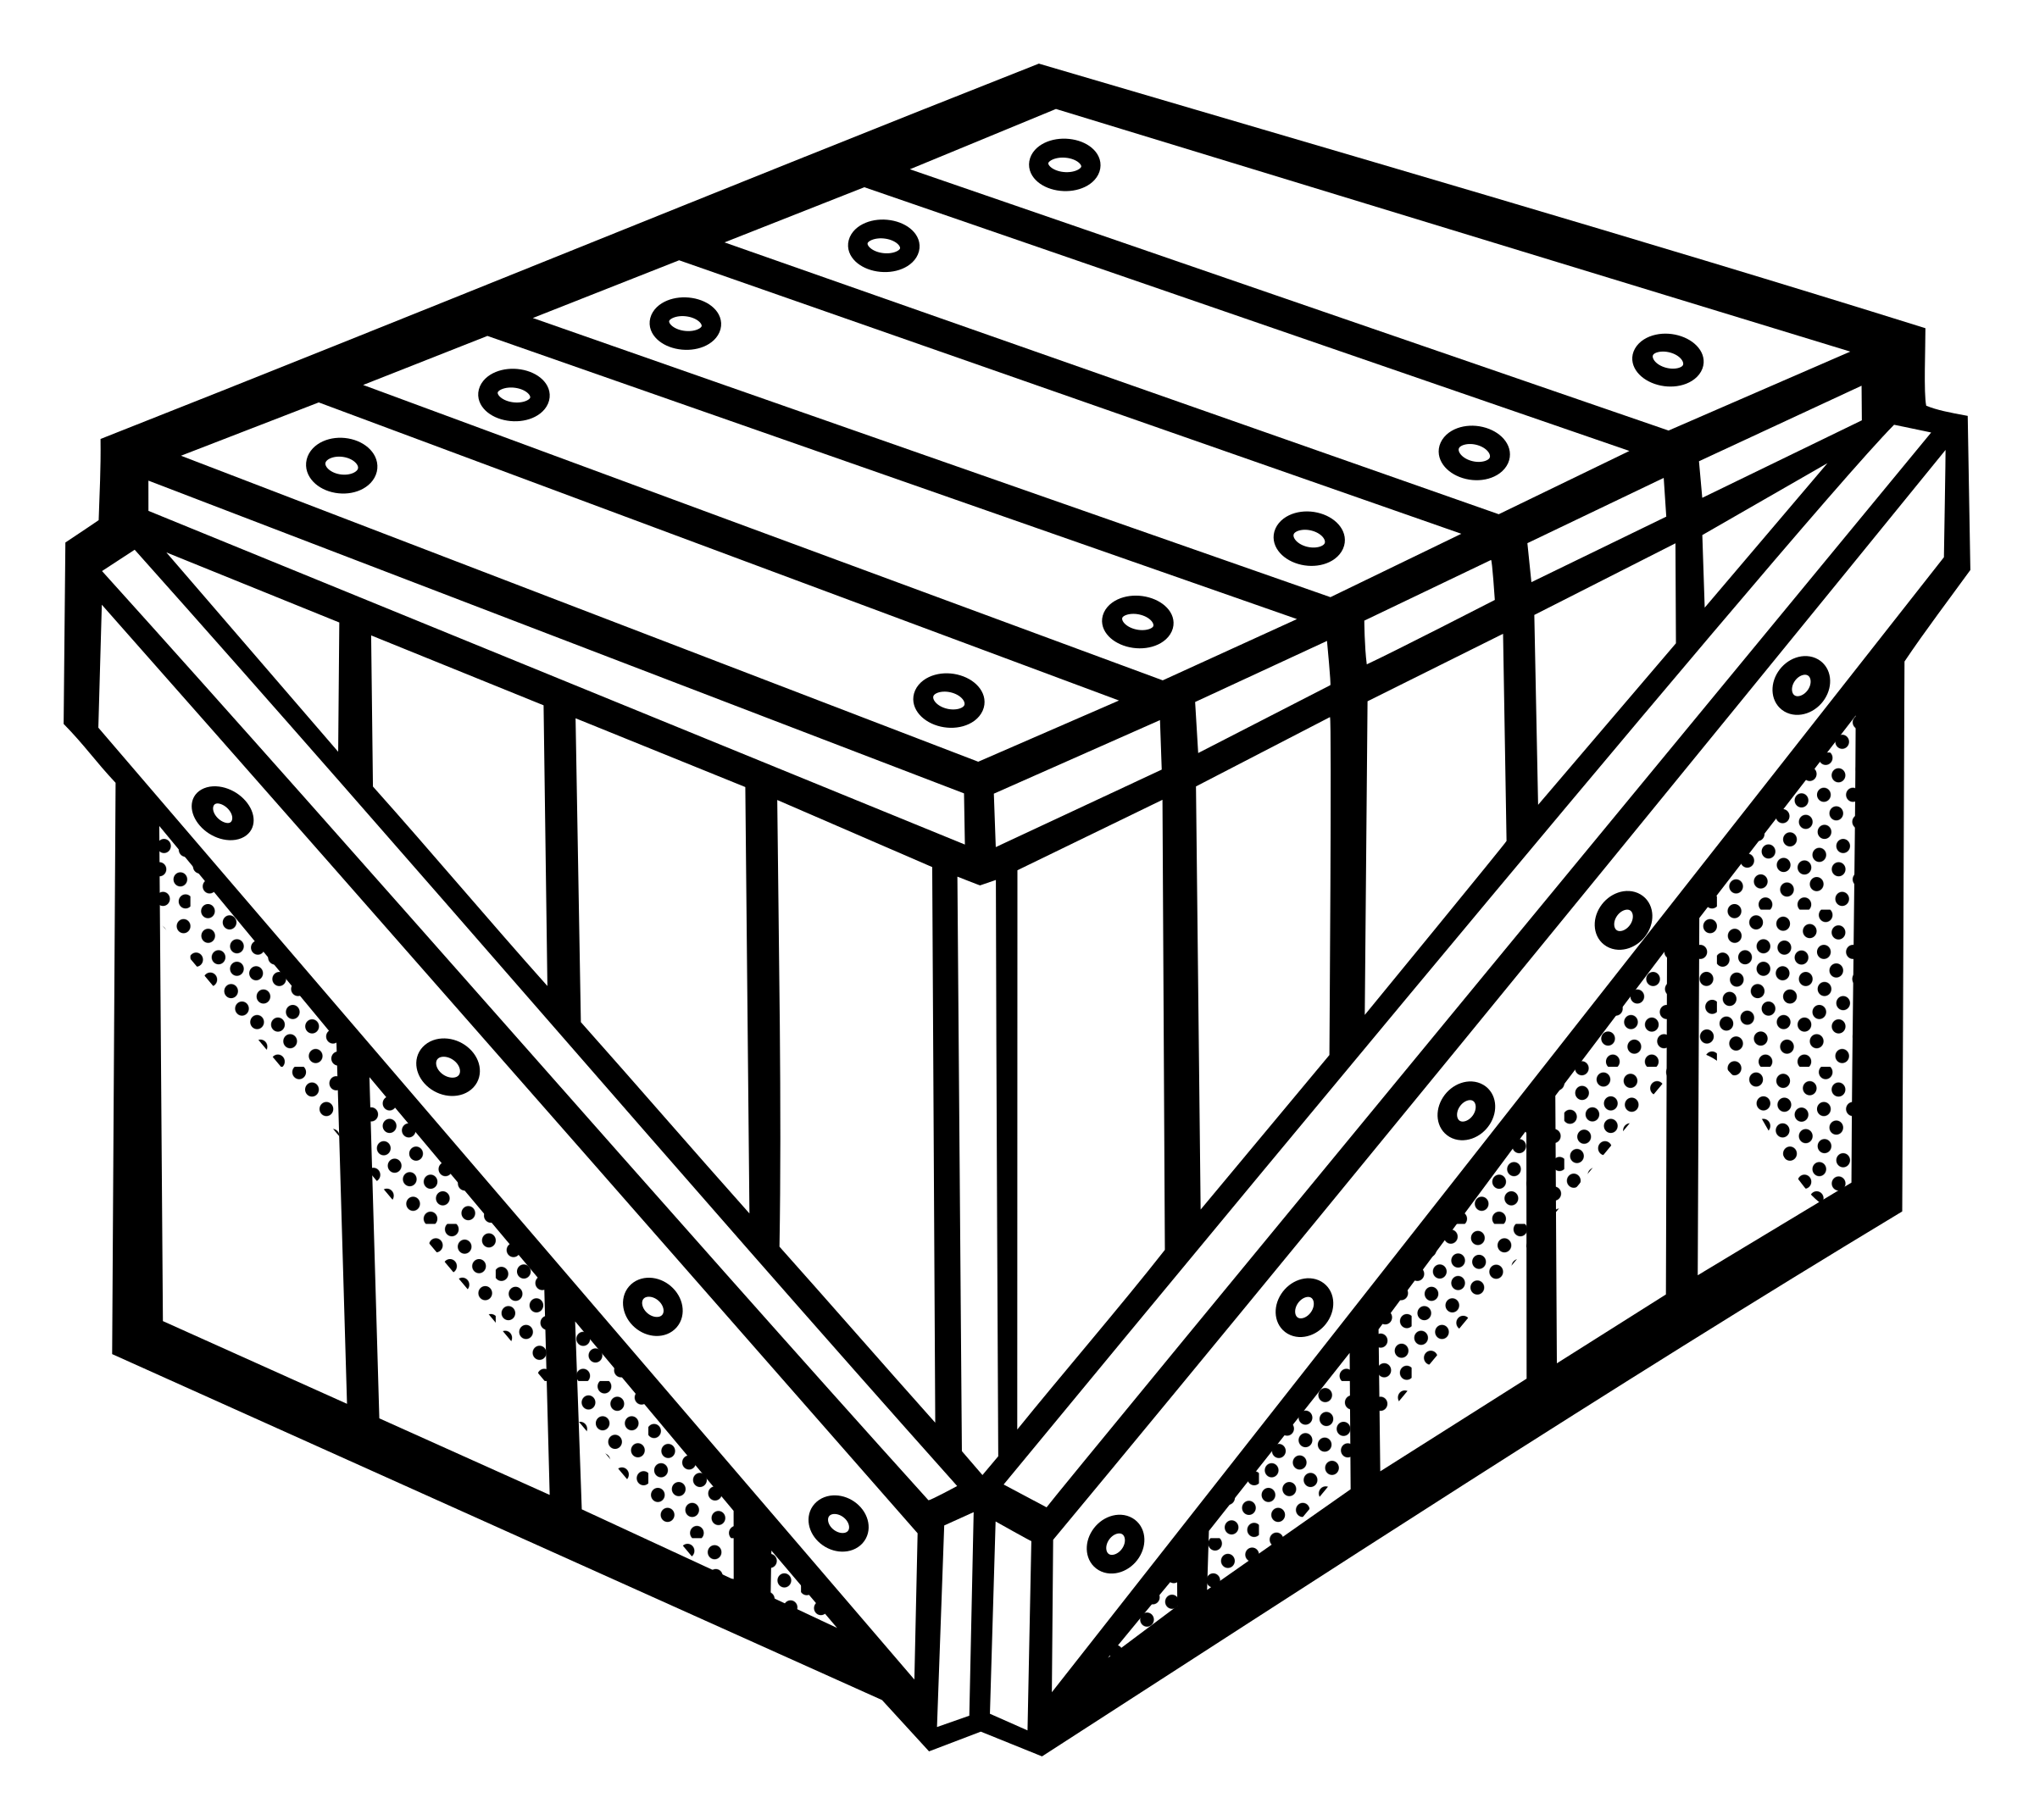 Crate outline png. Lineart icons free and